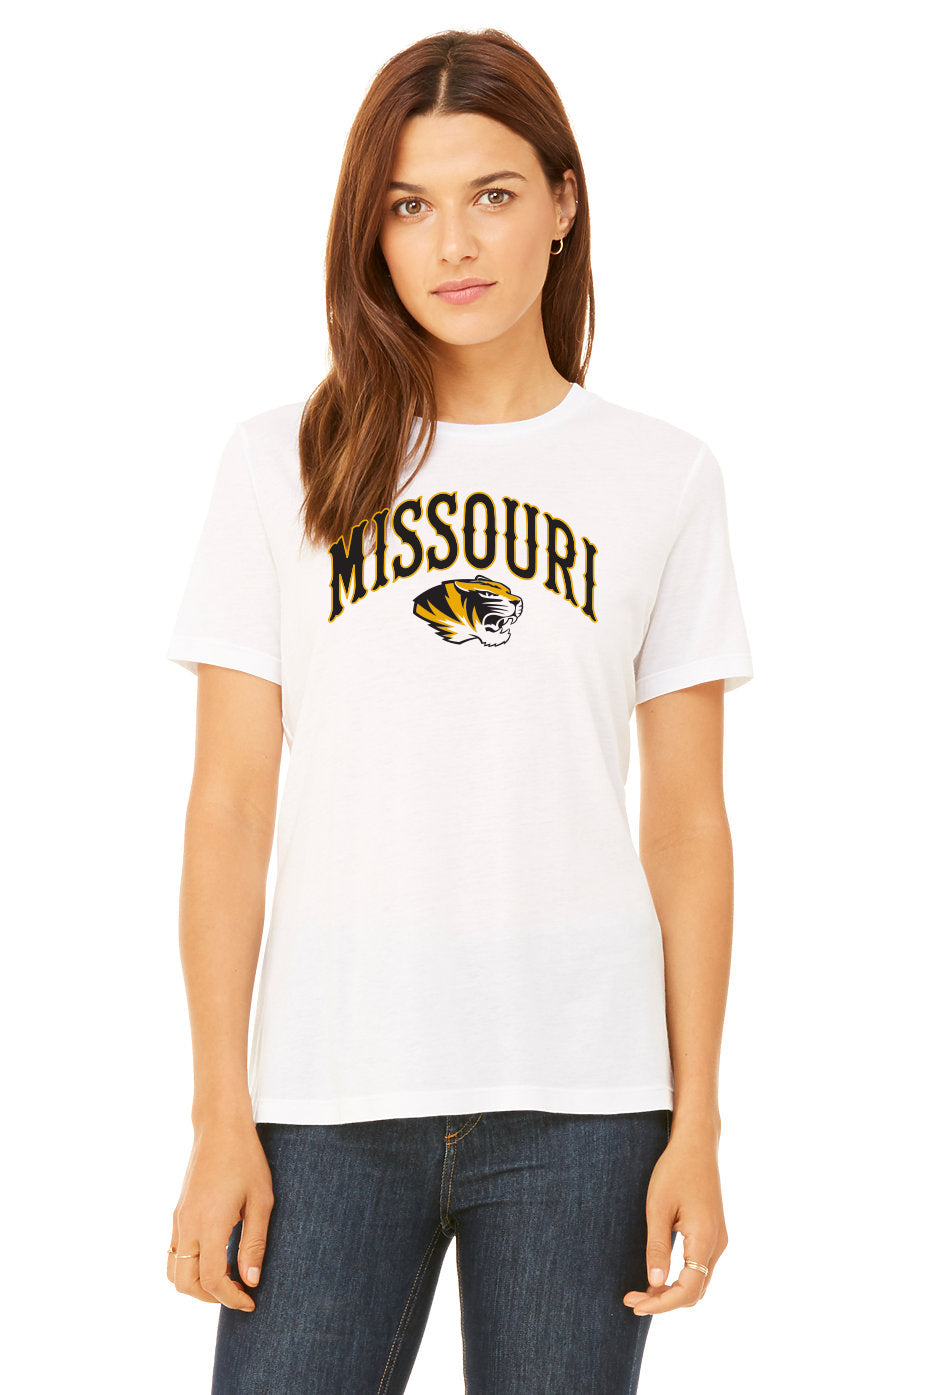 Traditional Missouri Tigers Tee